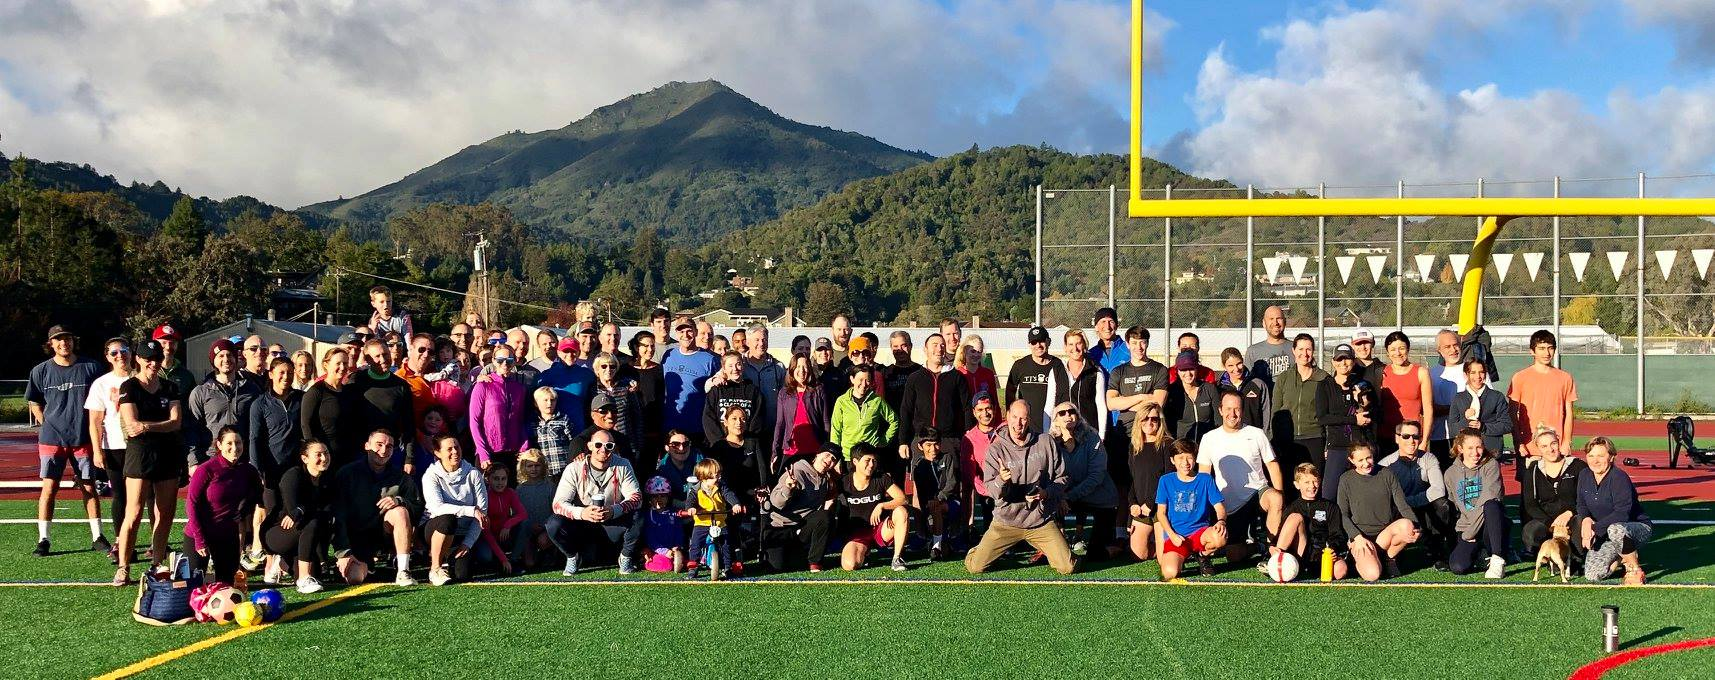 TURKEY workout 2018 is in the books! - Thank you all for coming out to sweat it out Thanksgiving morning! We had another fabulous crew of more than 100 of you, complete with more kids than ever actually joining in the workout. We continue to be grateful and feel fortunate to be able to do this work with our community. Thank you all, and here's to happy, healthy, and safe holiday season for us all!